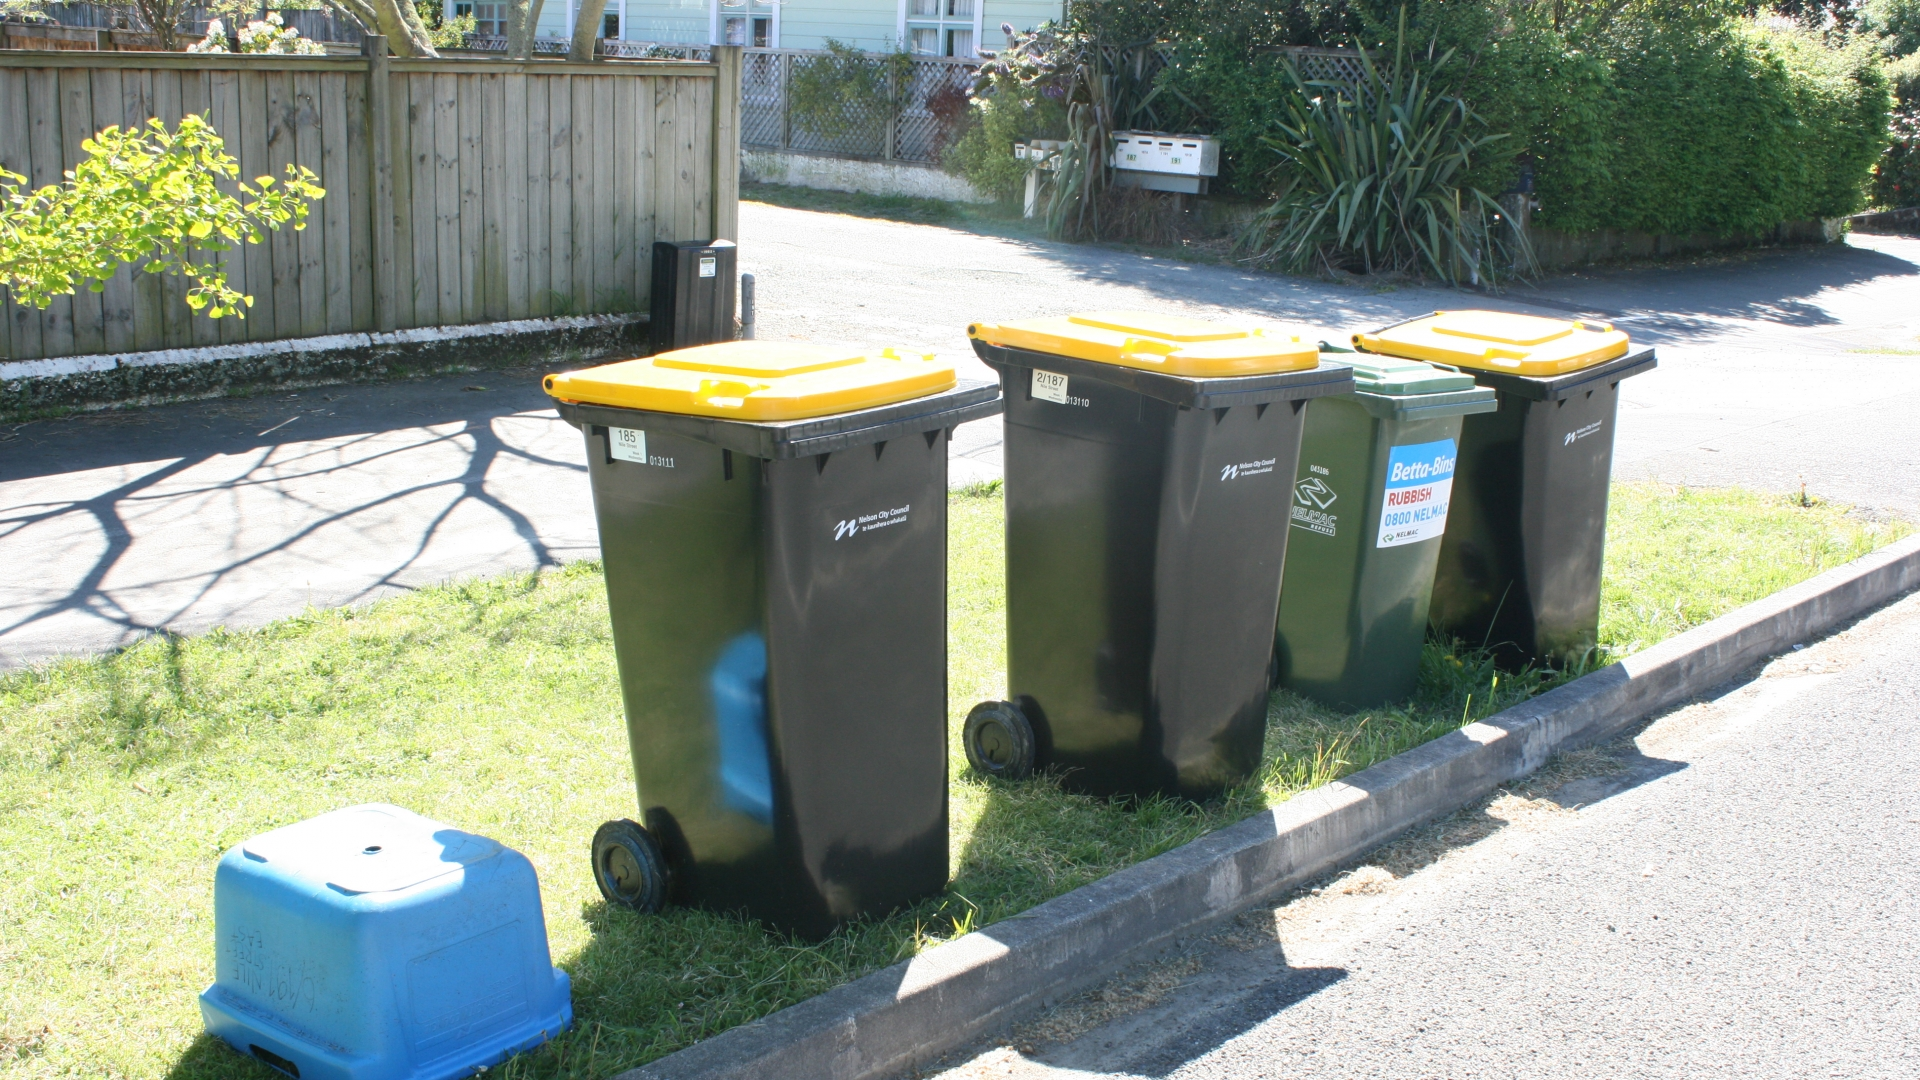 Recycling returns to normal in Nelson from Monday, 18 May.